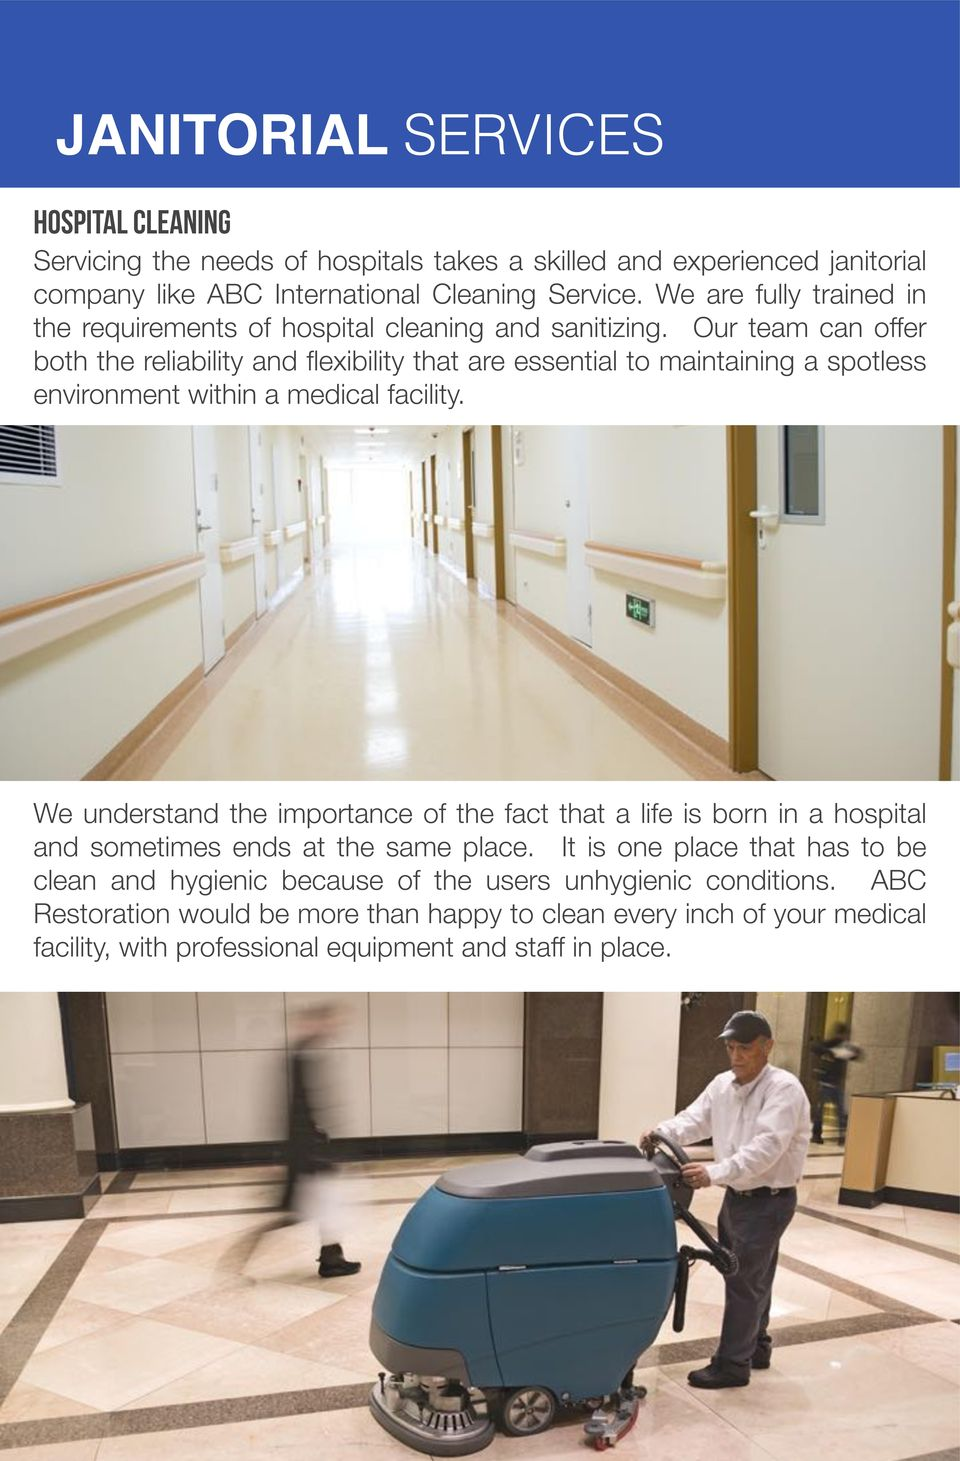 Our team can offer both the reliability and flexibility that are essential to maintaining a spotless environment within a medical facility.